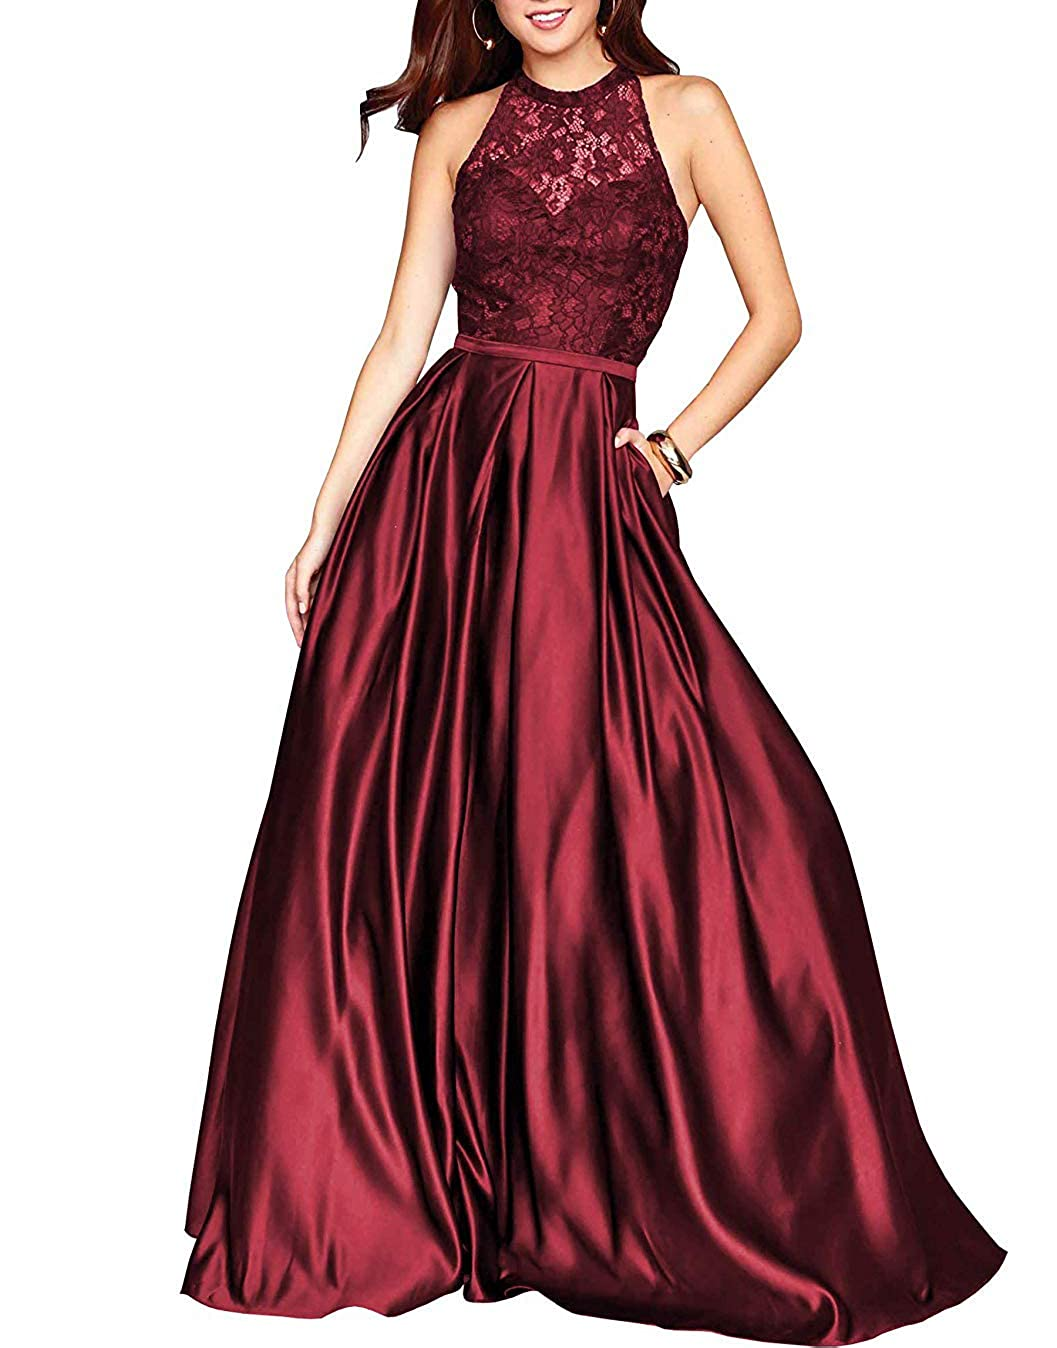 Dark Red PearlBridal Women's Halter Lace Prom Dresses Backless A Line Long Evening Formal Dress with Pockets